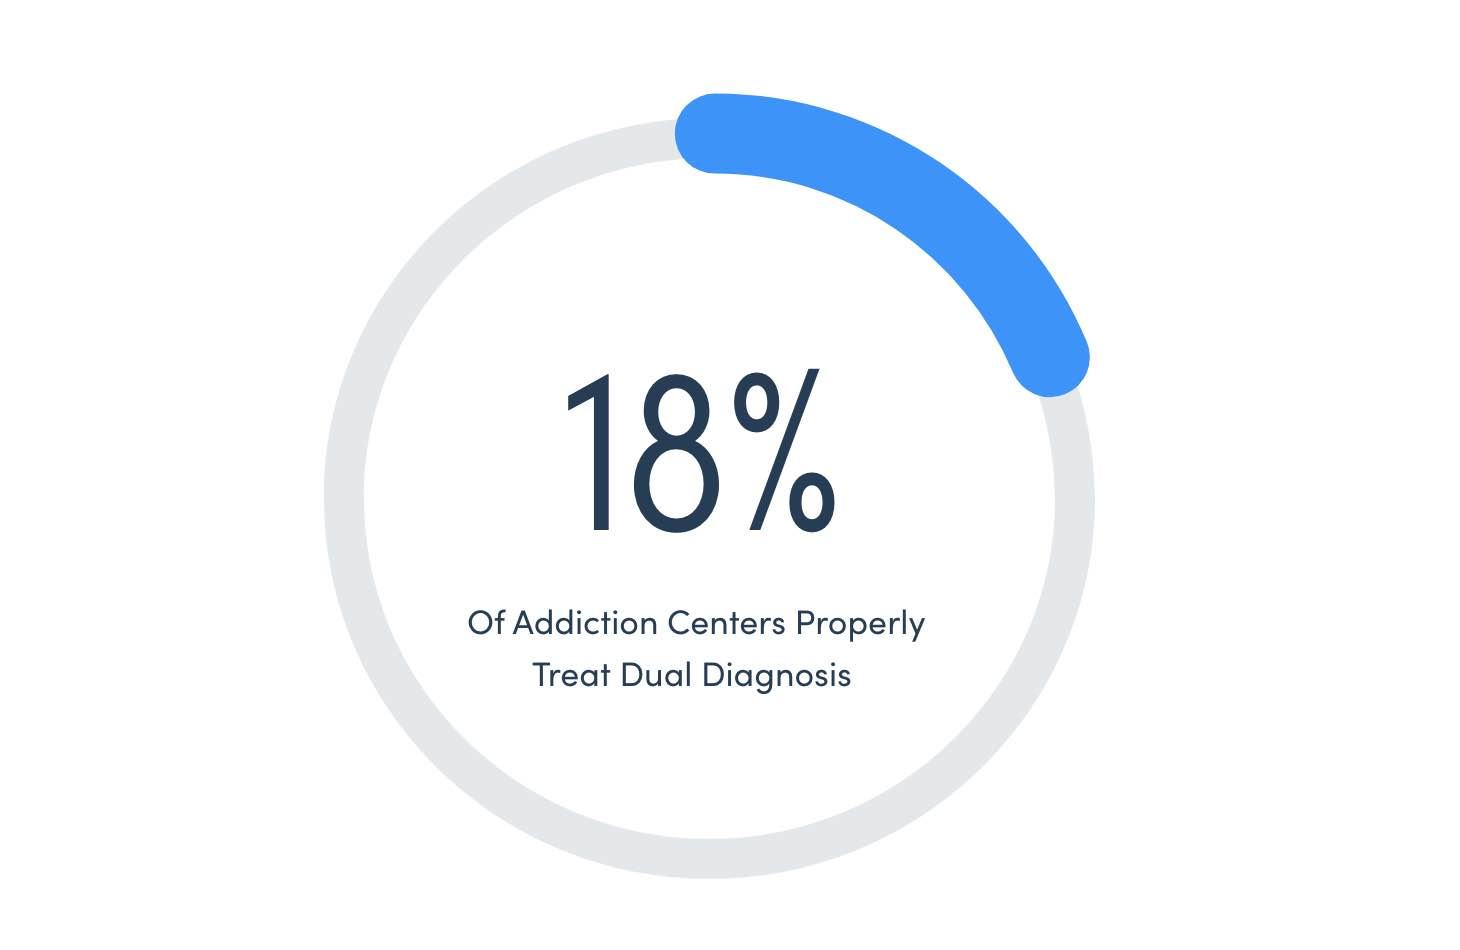 Rehab Arizona Only 18% Of Addiction Centers Properly Treat Dual Diagnosis